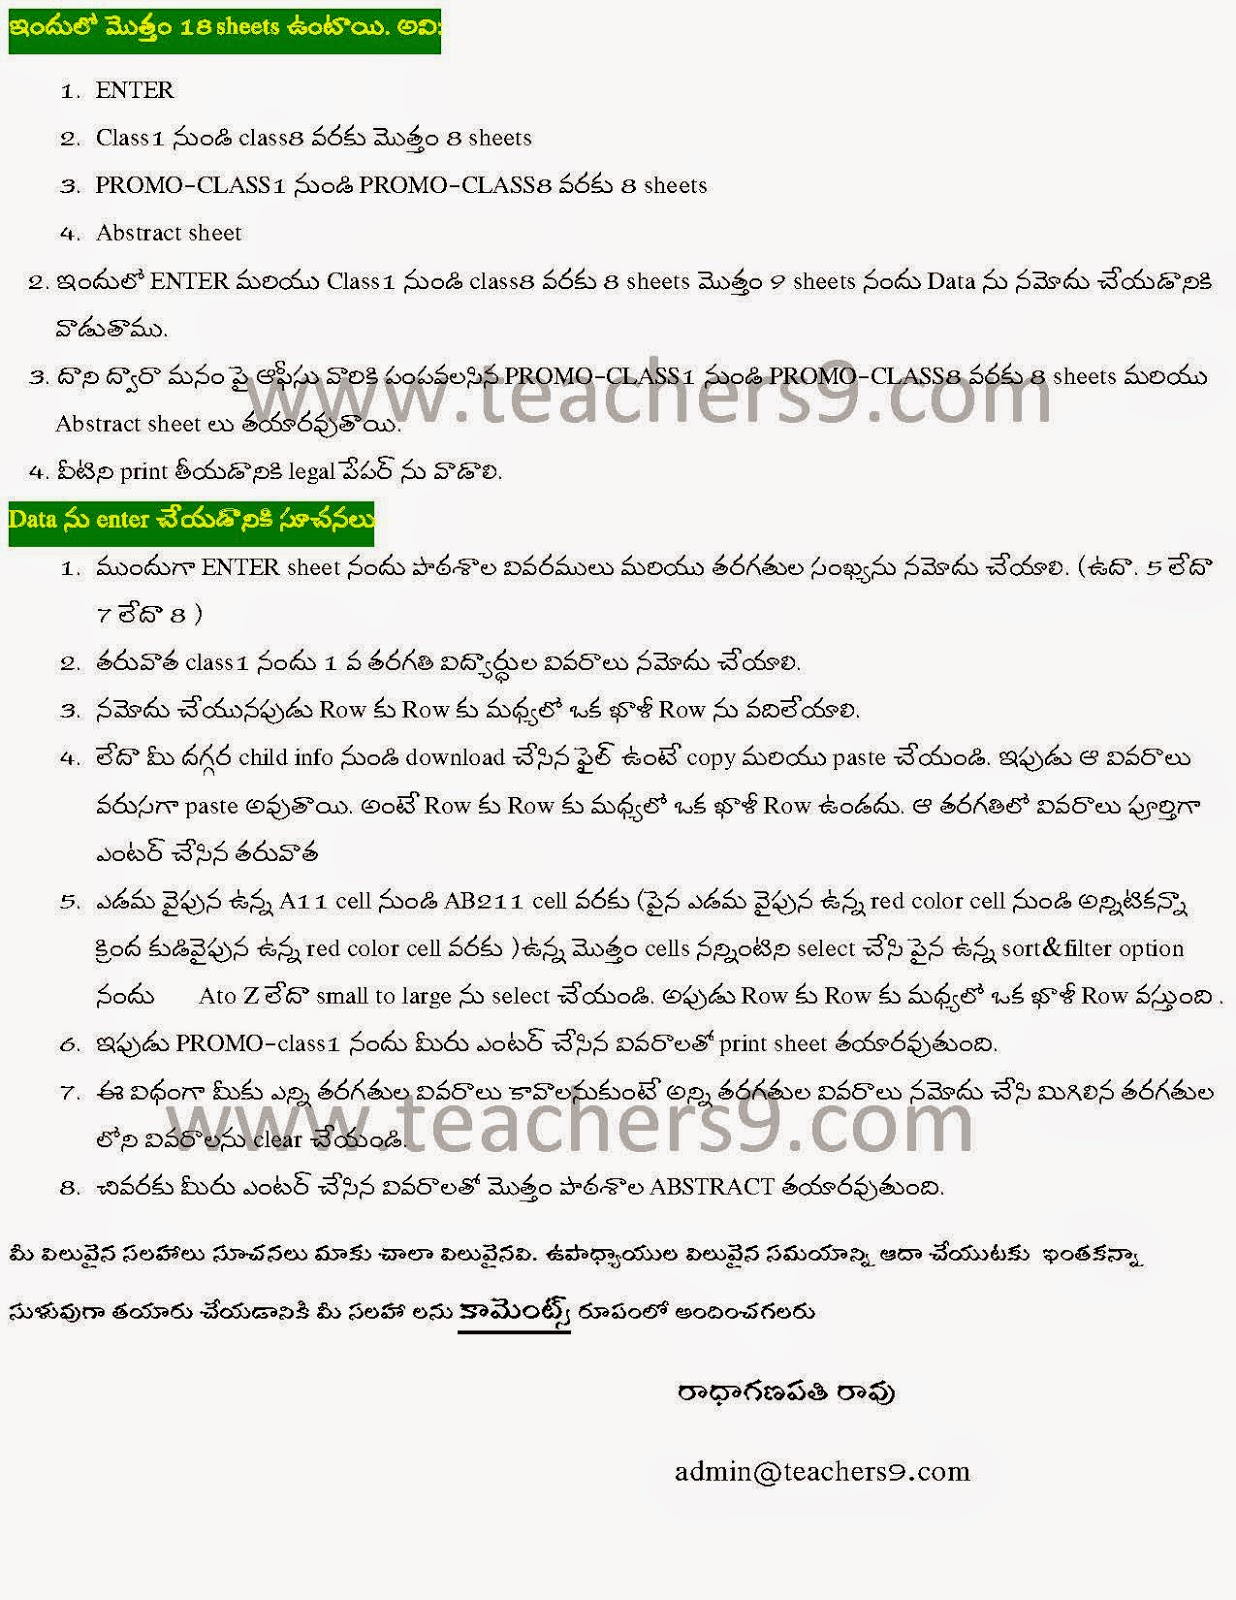 Promotion list software 2015-16 instructions